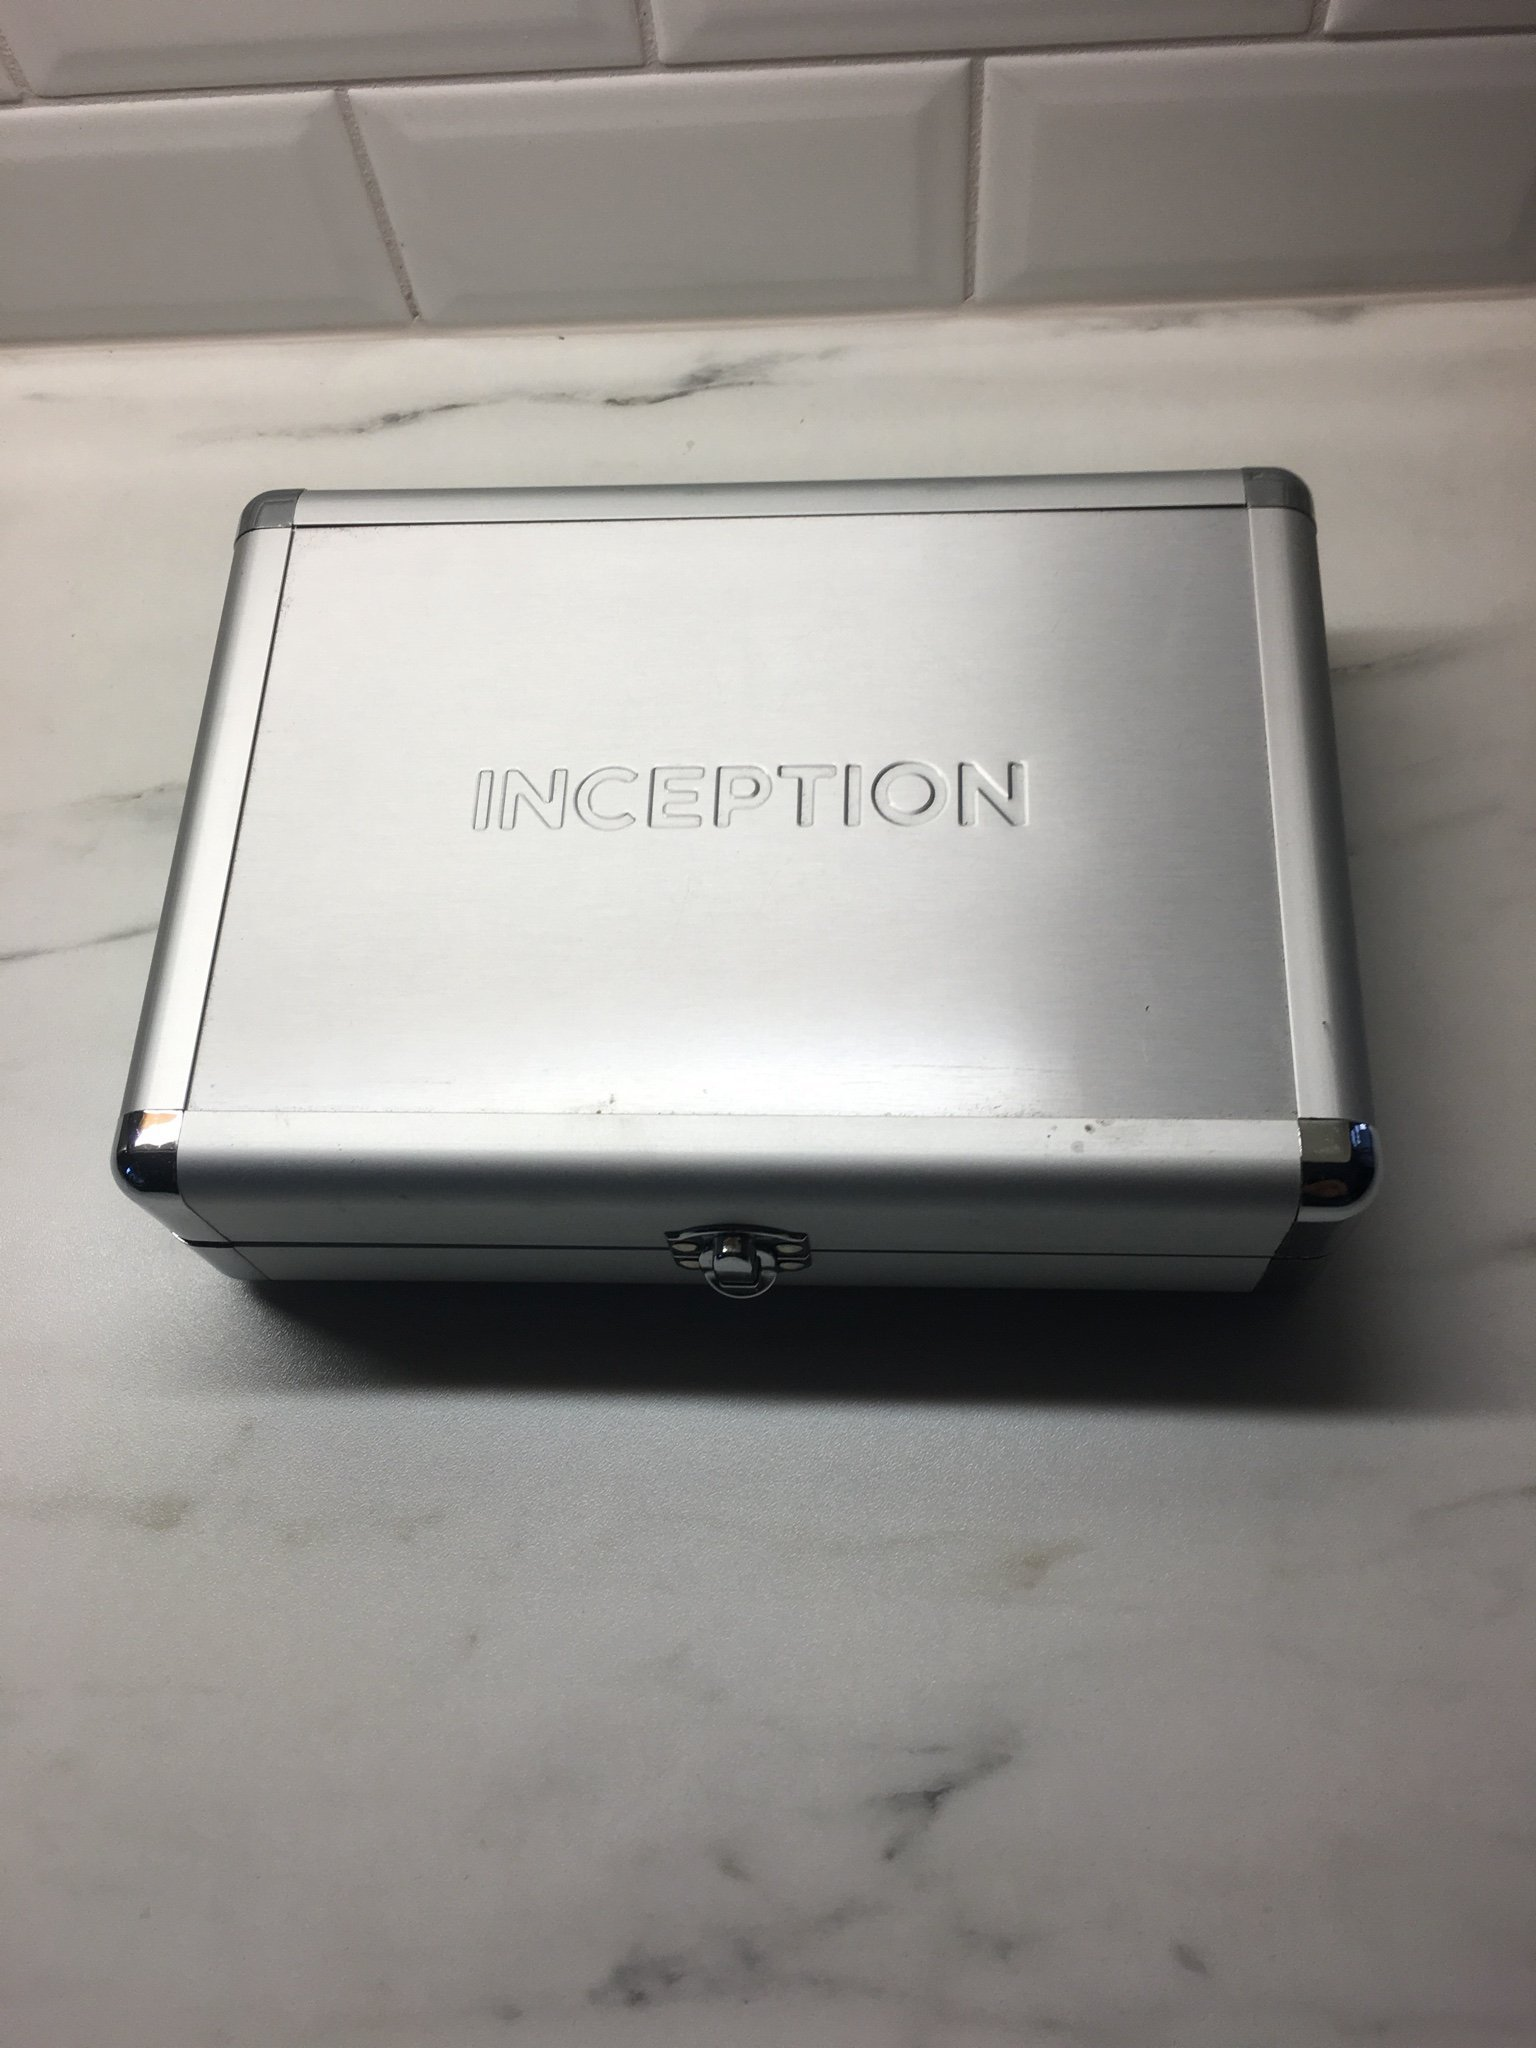 Inception-limited edition metal case